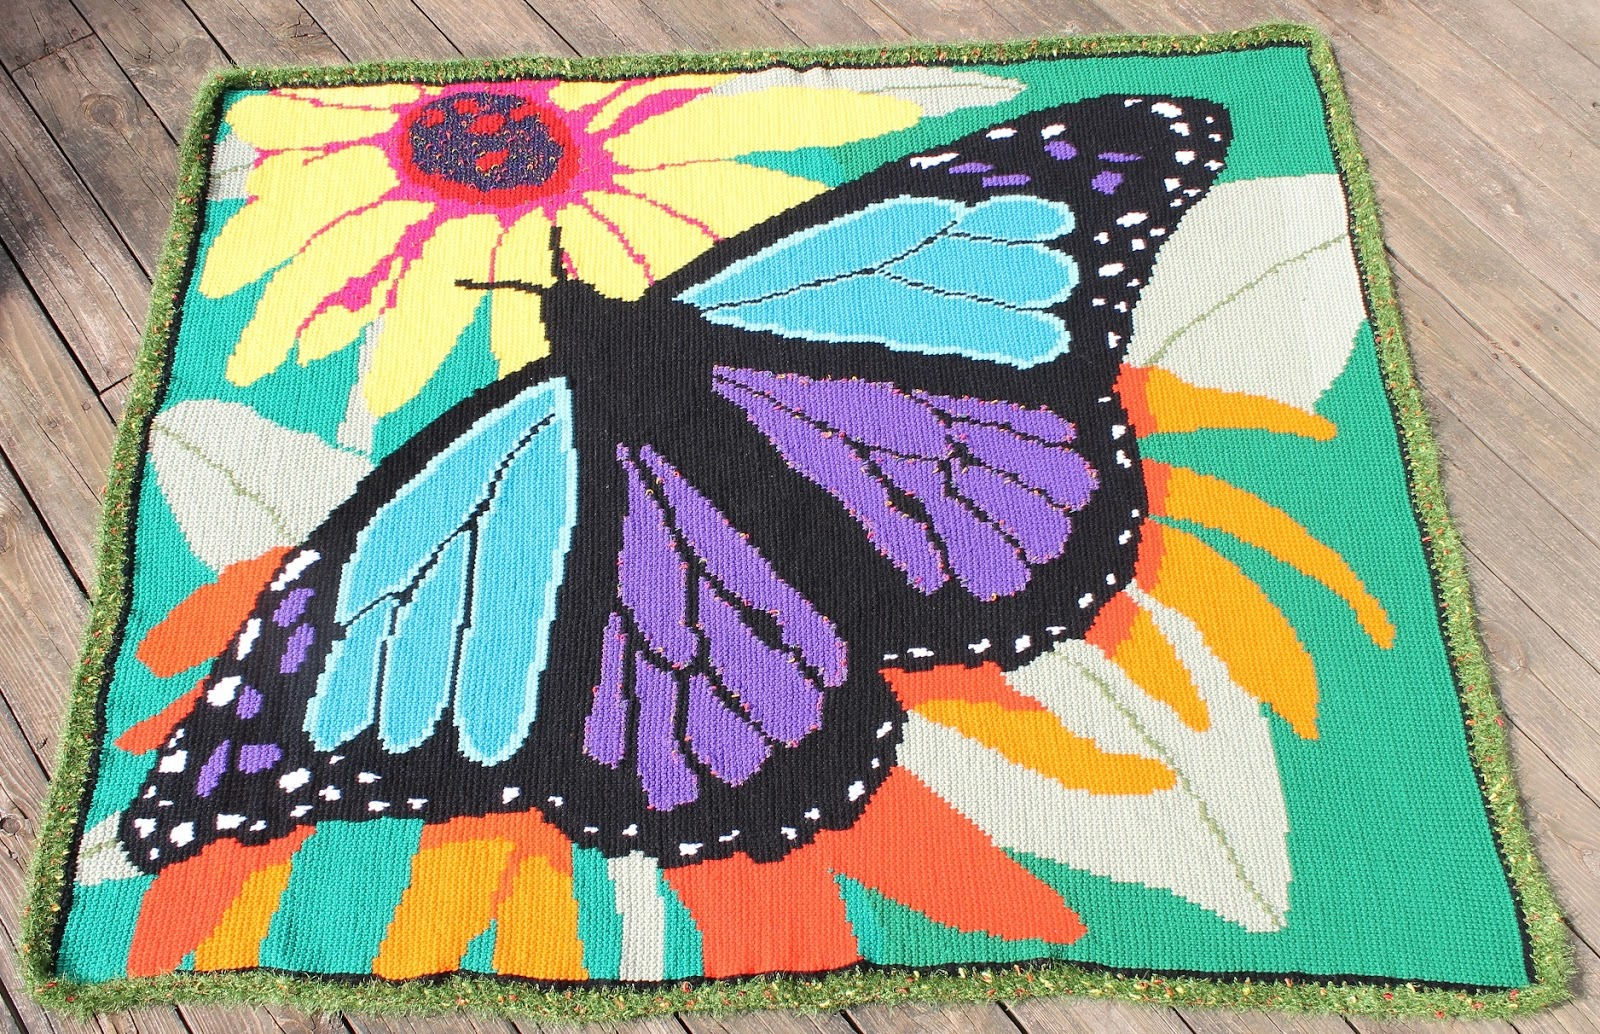 Butterfly Crochet Afghan Pattern Free : becks blog: Magnificent Butterfly Afghan